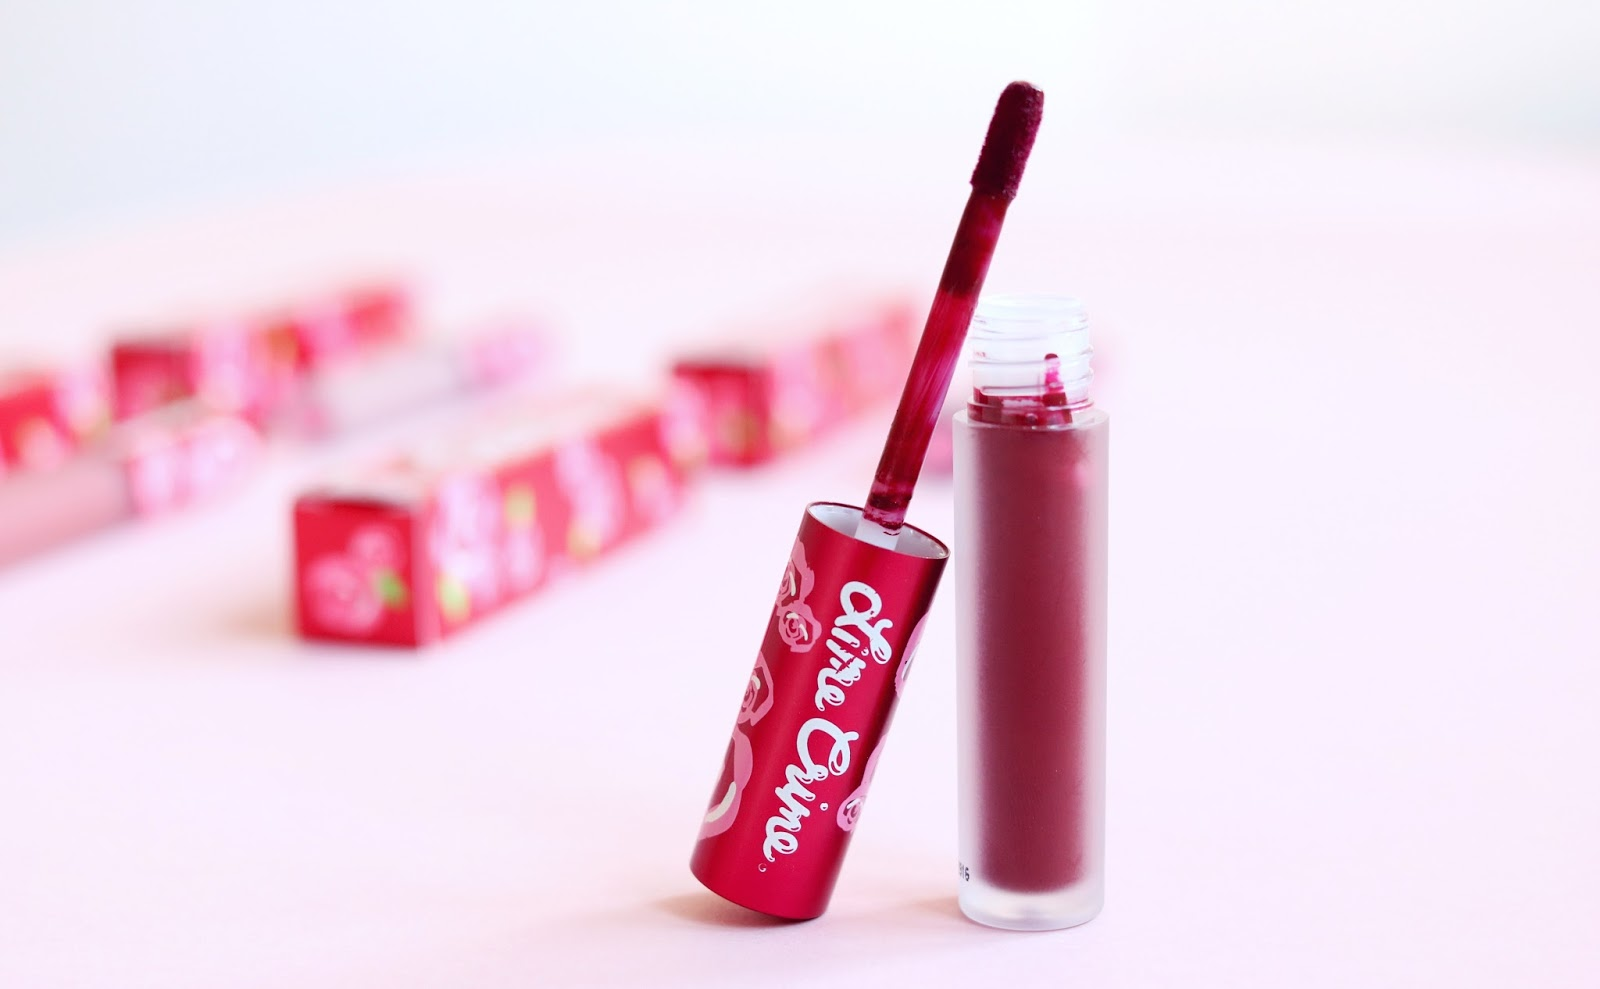 A blog post about Lime Crime Velvetines from Cult Beauty